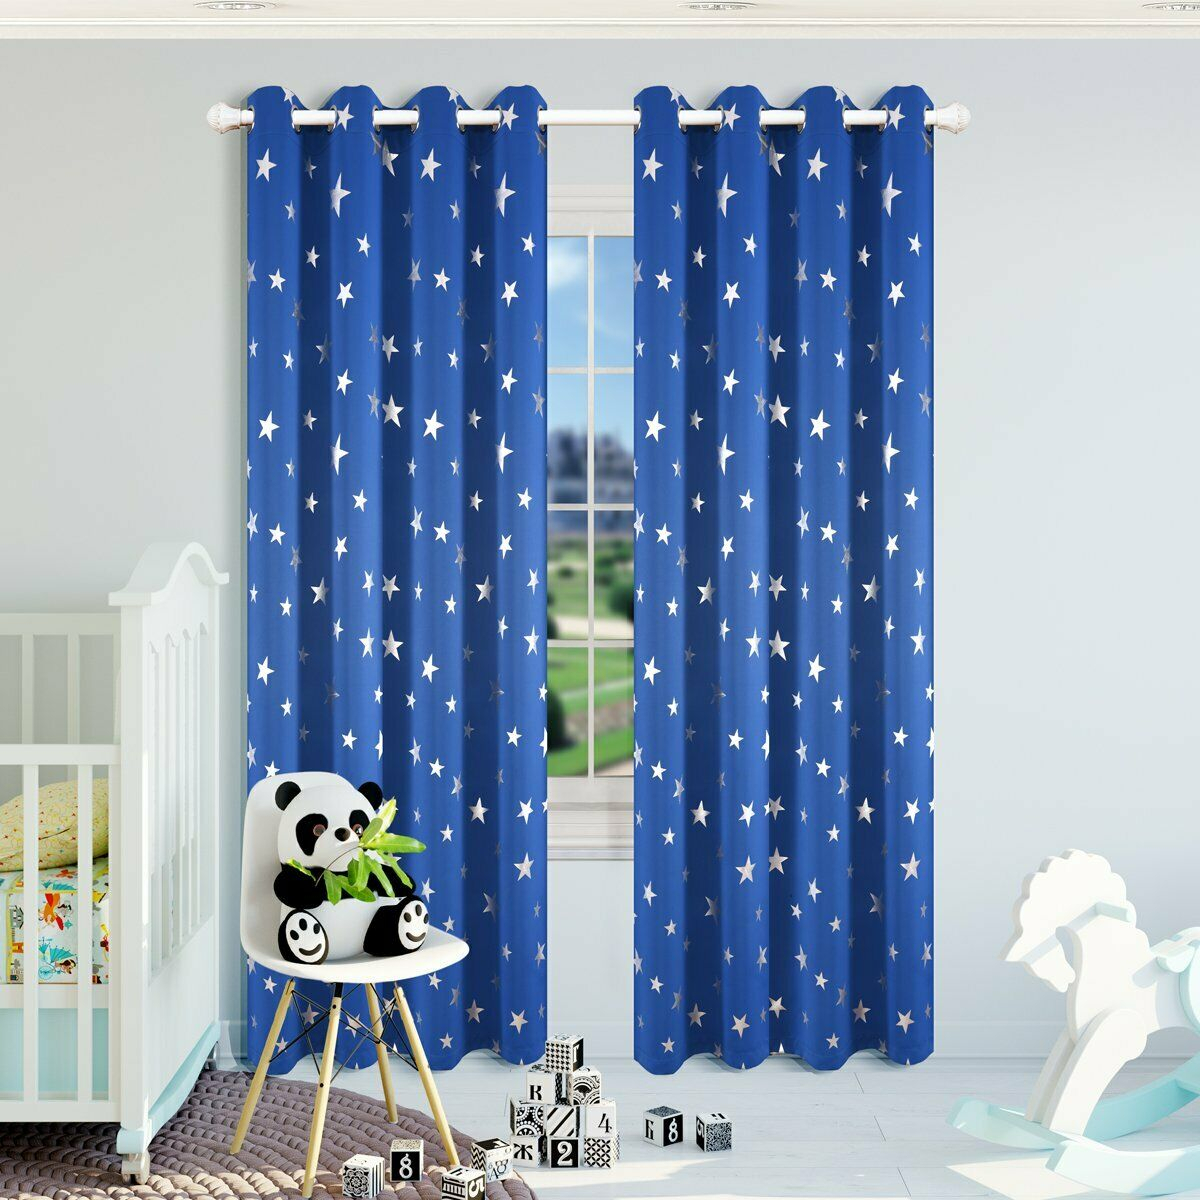 Room Darkening Star Curtains Thermal Insulated Window Curtains For Kids Bedroom For The Gray Barn Kind Koala Curtain Panel Pairs (View 21 of 30)